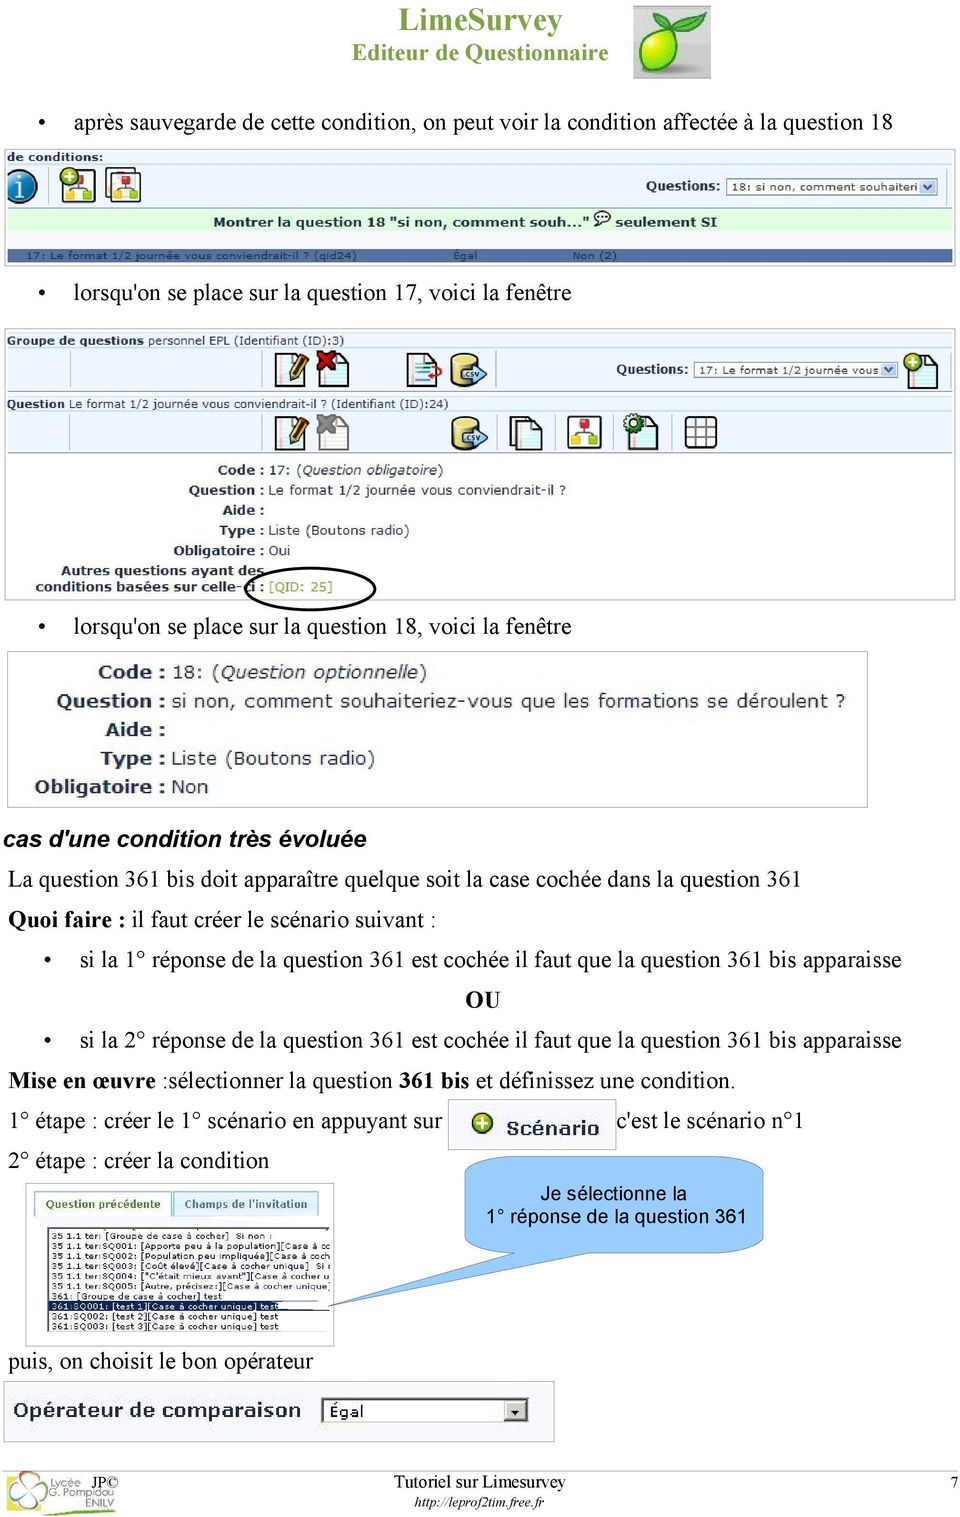 question 361 est cochée il faut que la question 361 bis apparaisse OU si la 2 réponse de la question 361 est cochée il faut que la question 361 bis apparaisse Mise en œuvre :sélectionner la question